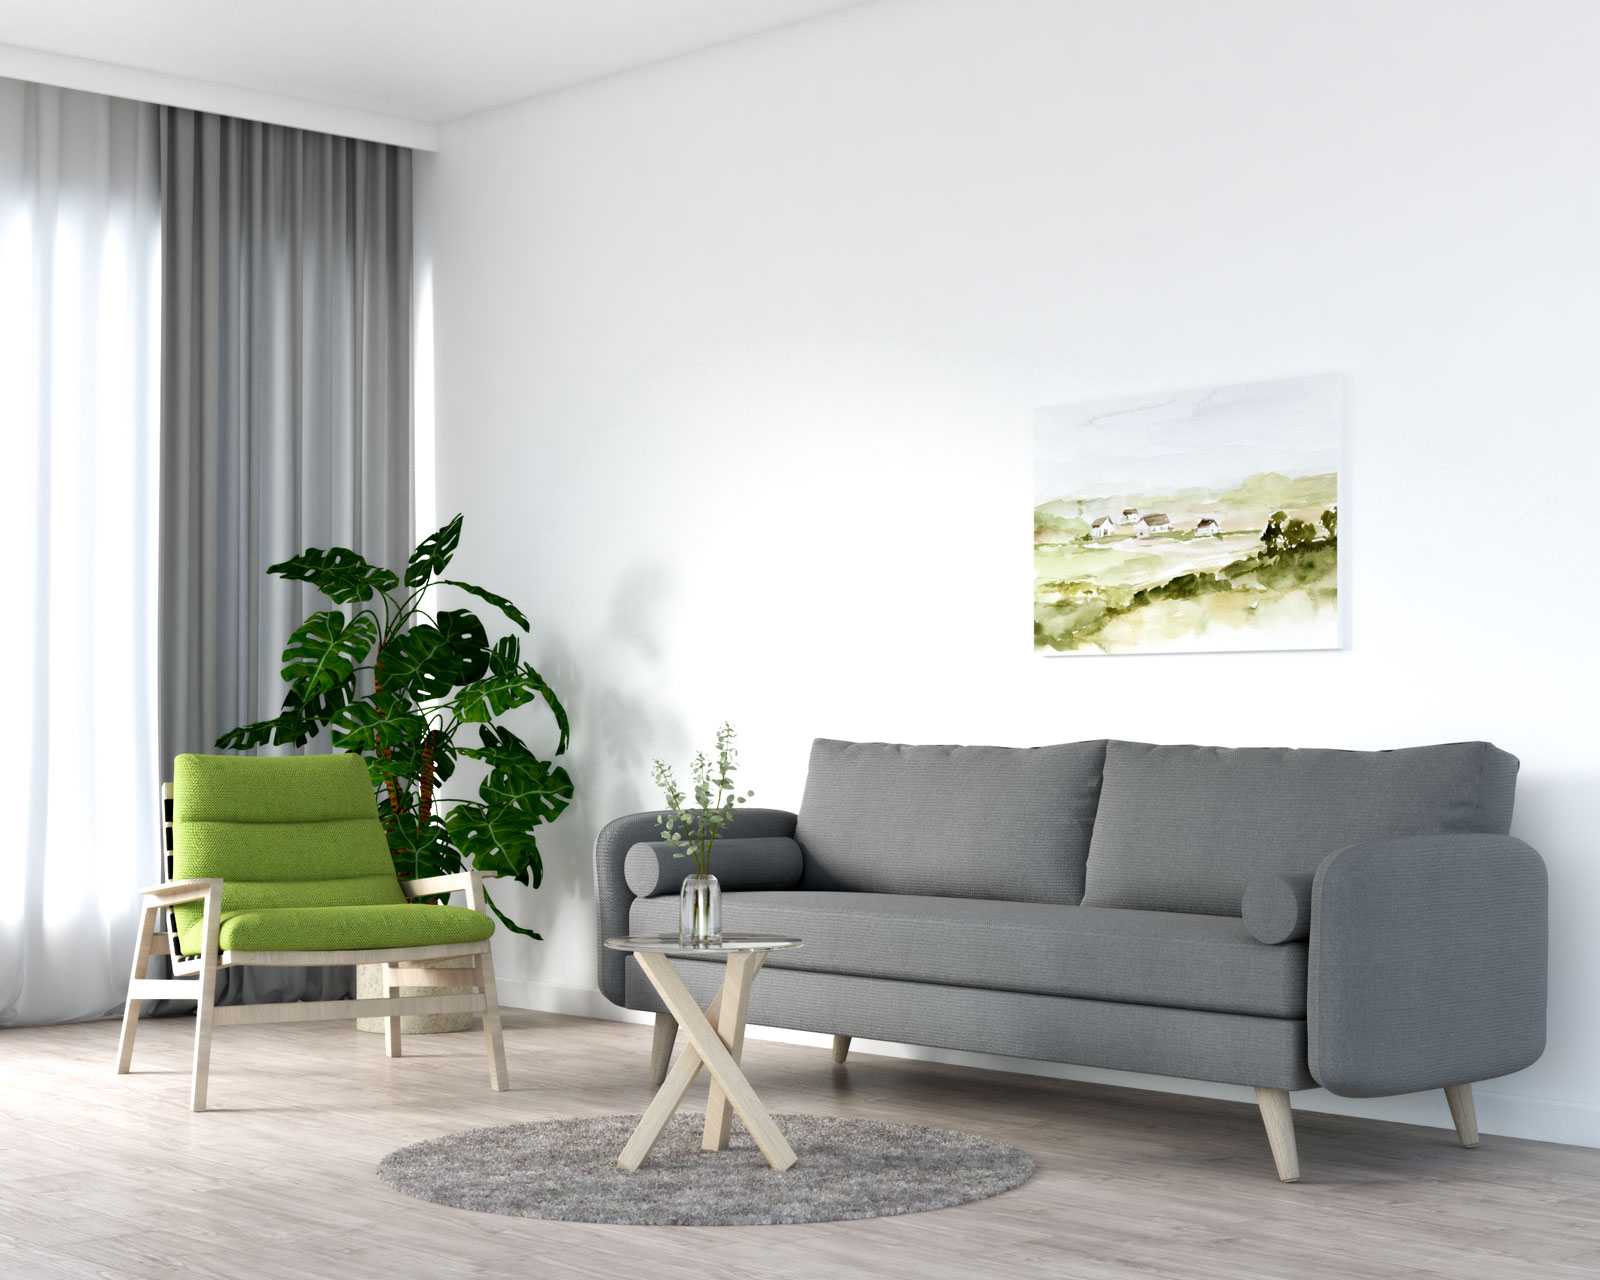 Olive green accent chair with gray sofa